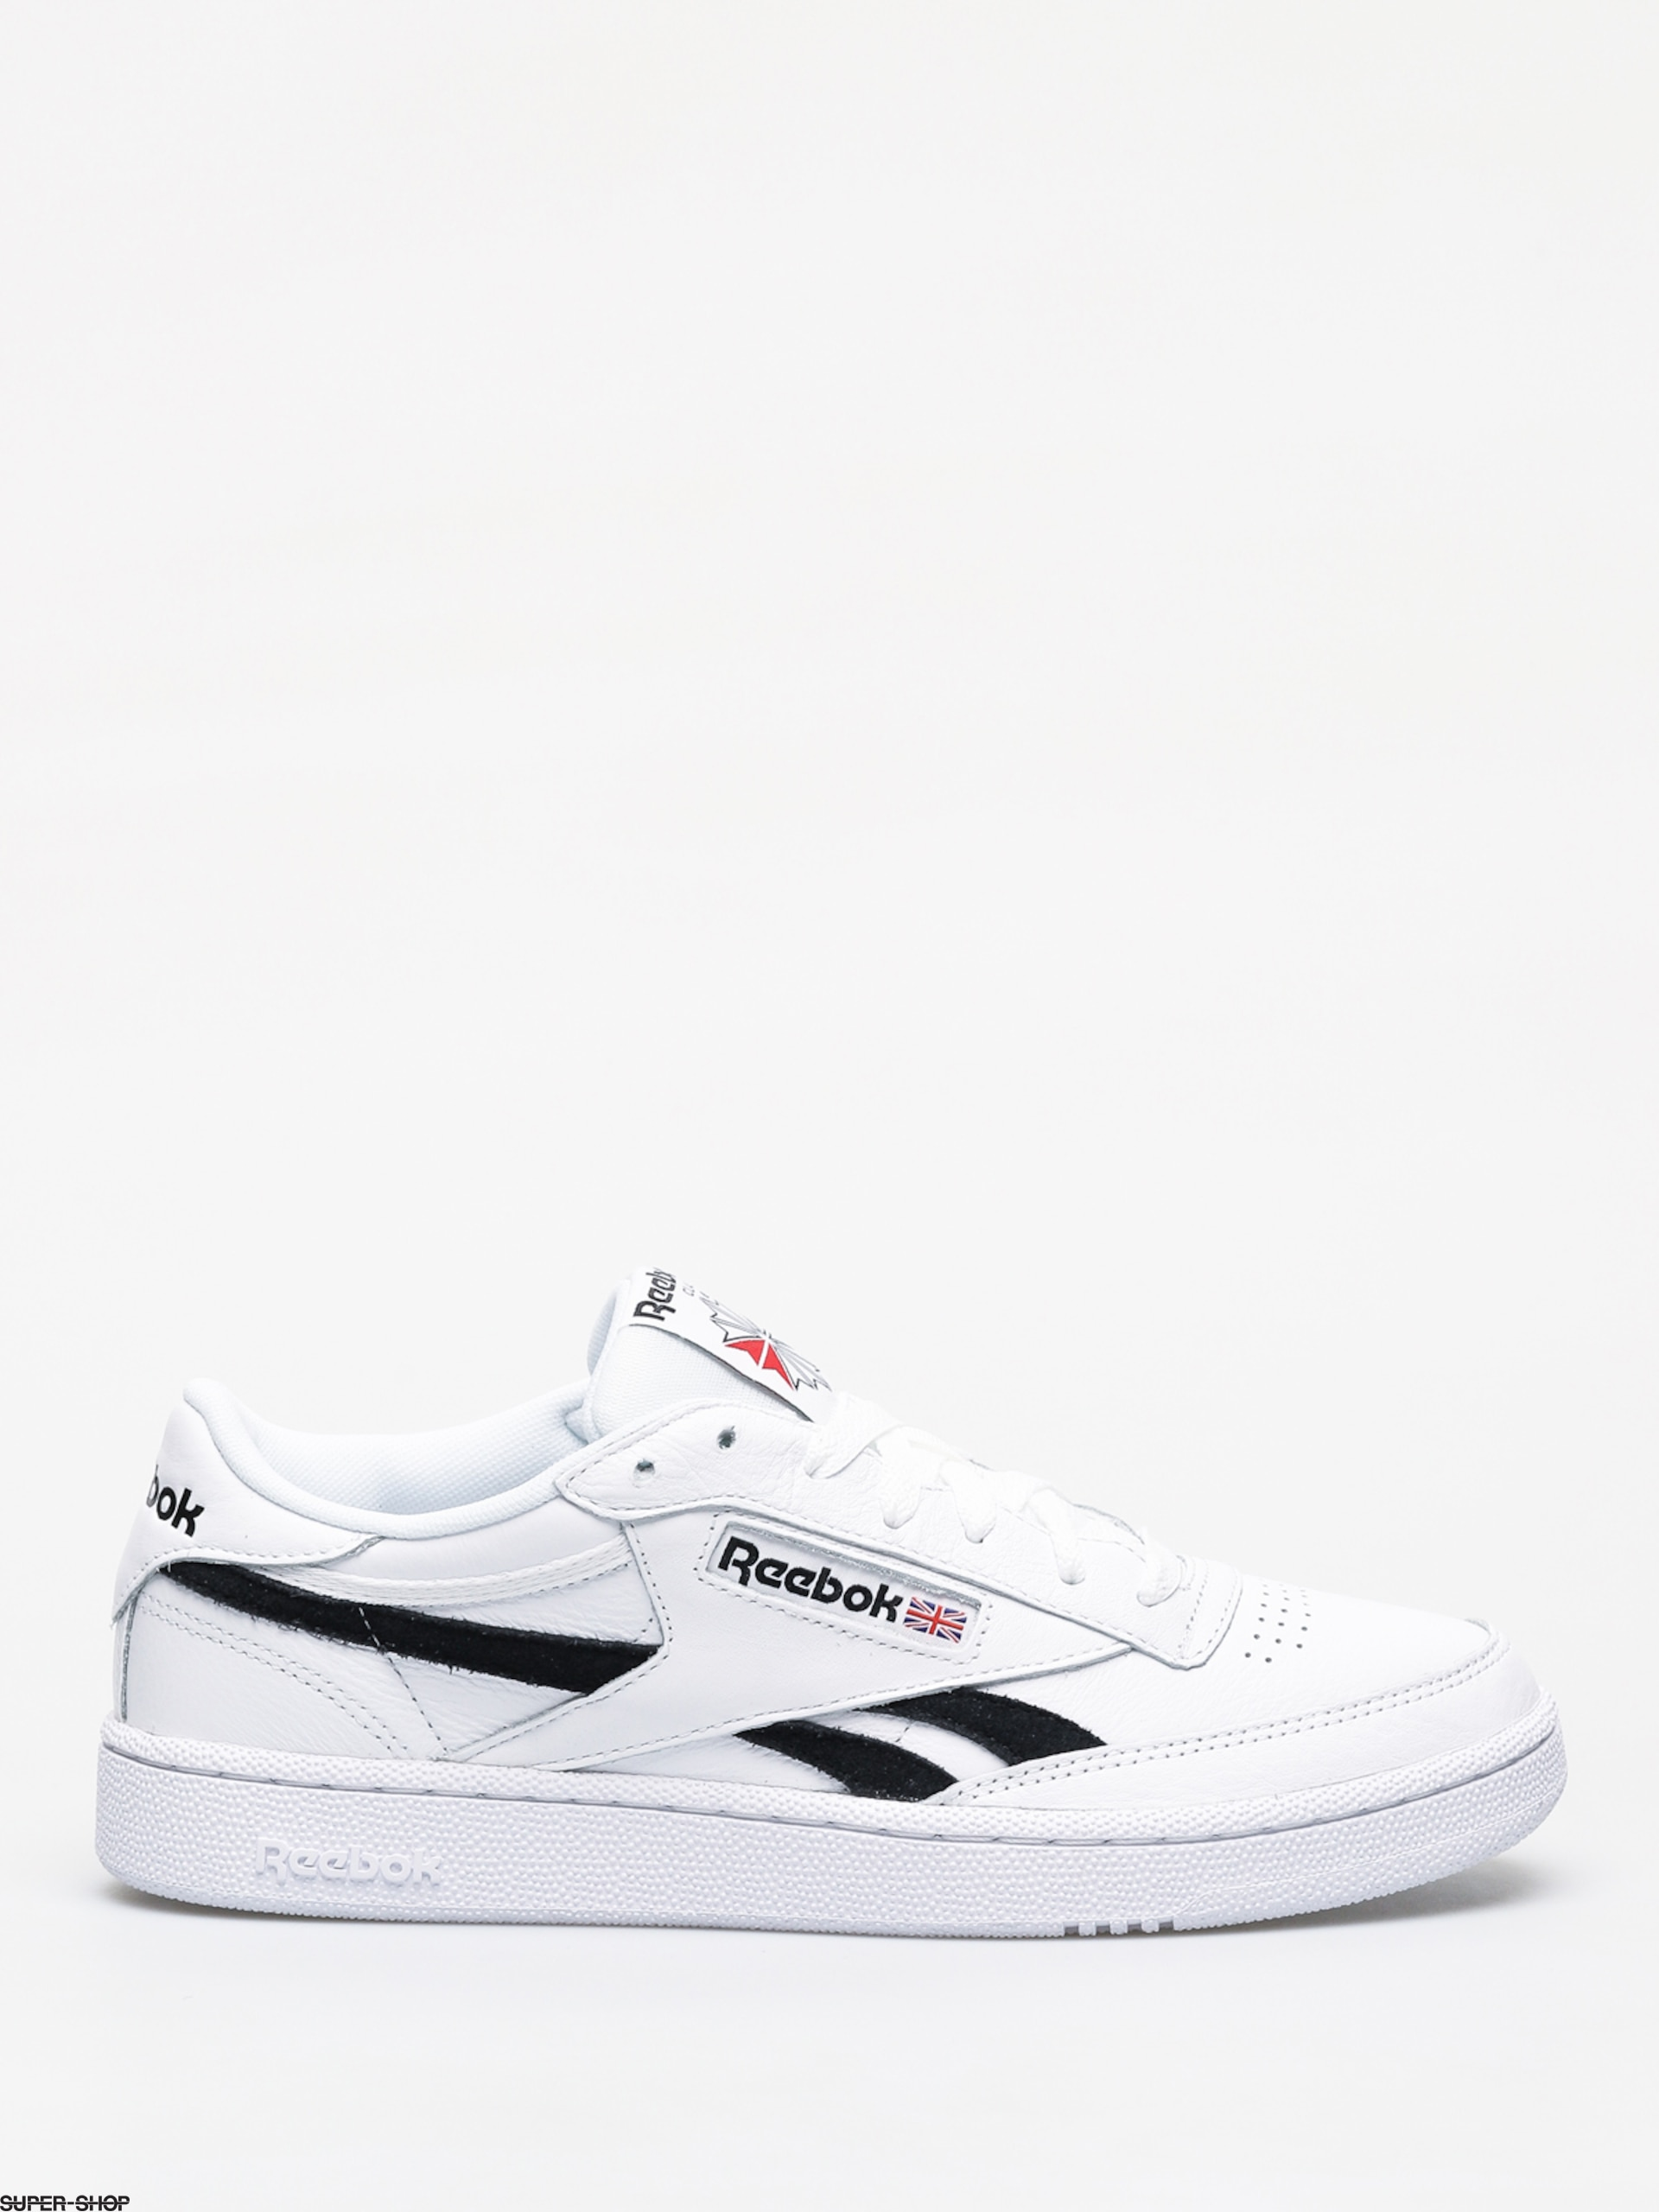 4fd4aea5622 1015935-w1920-reebok-revenge-plus-mu-shoes-white-black.jpg